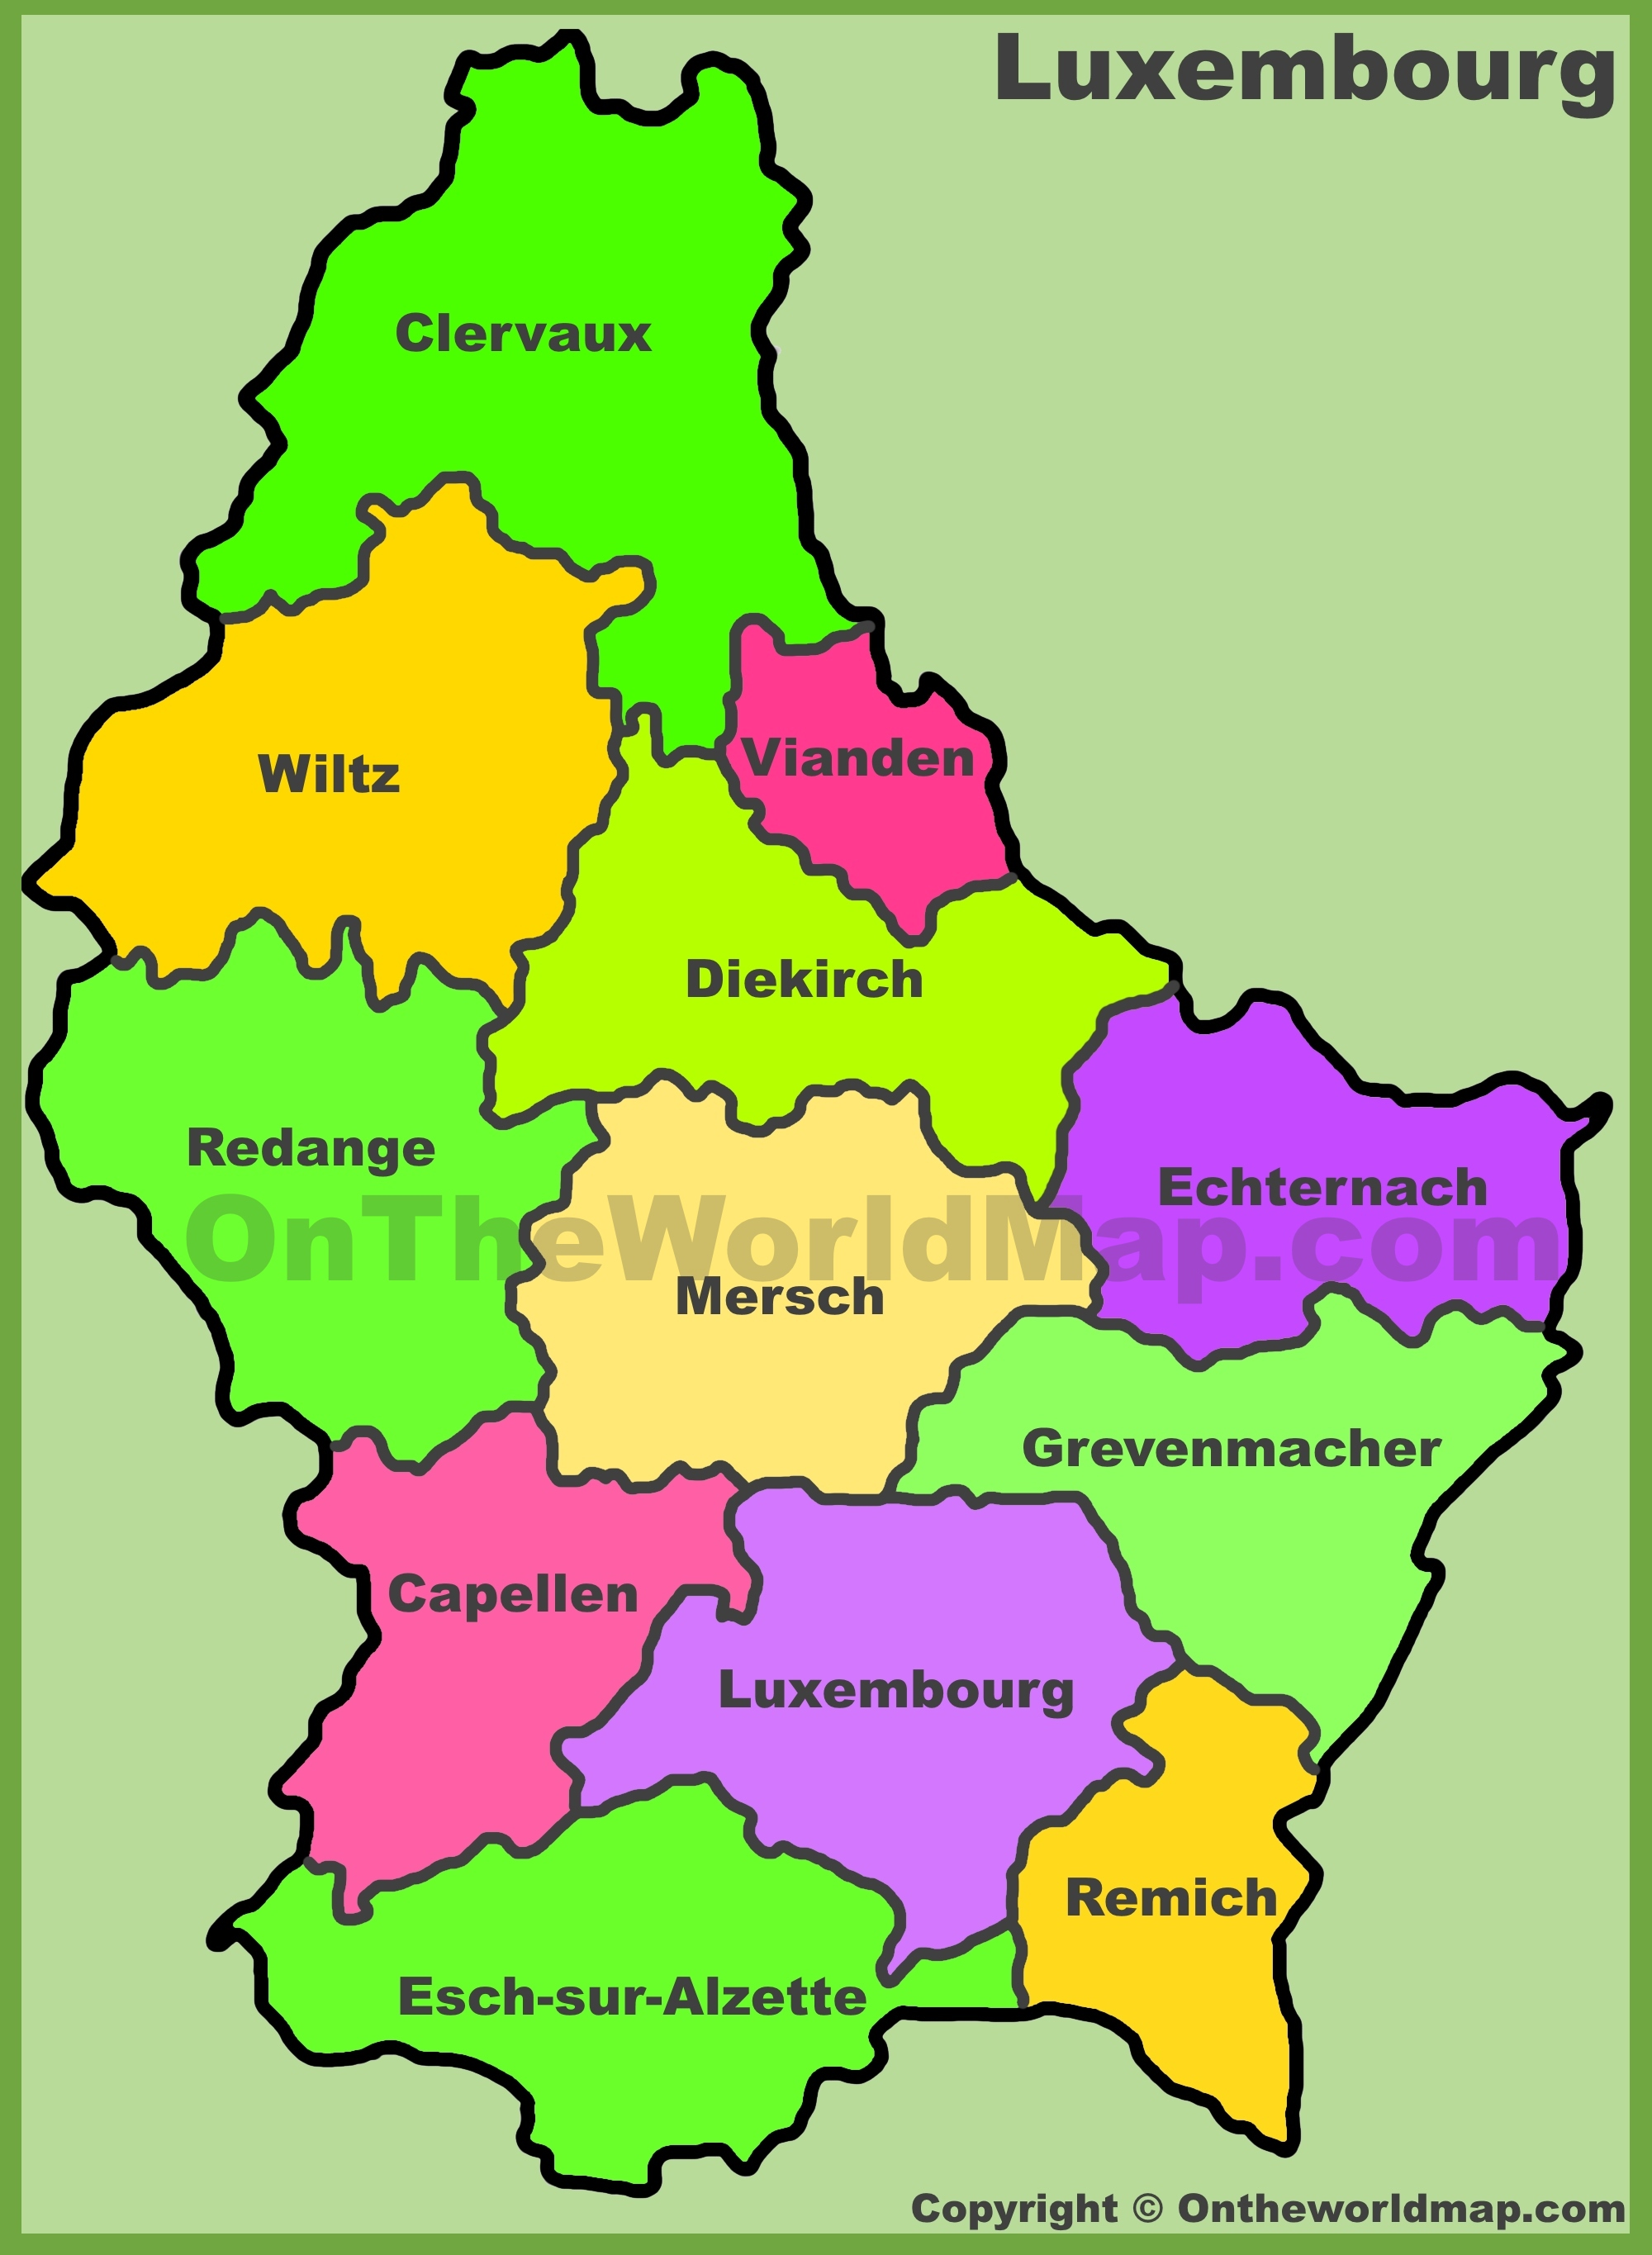 Luxembourg cantons map